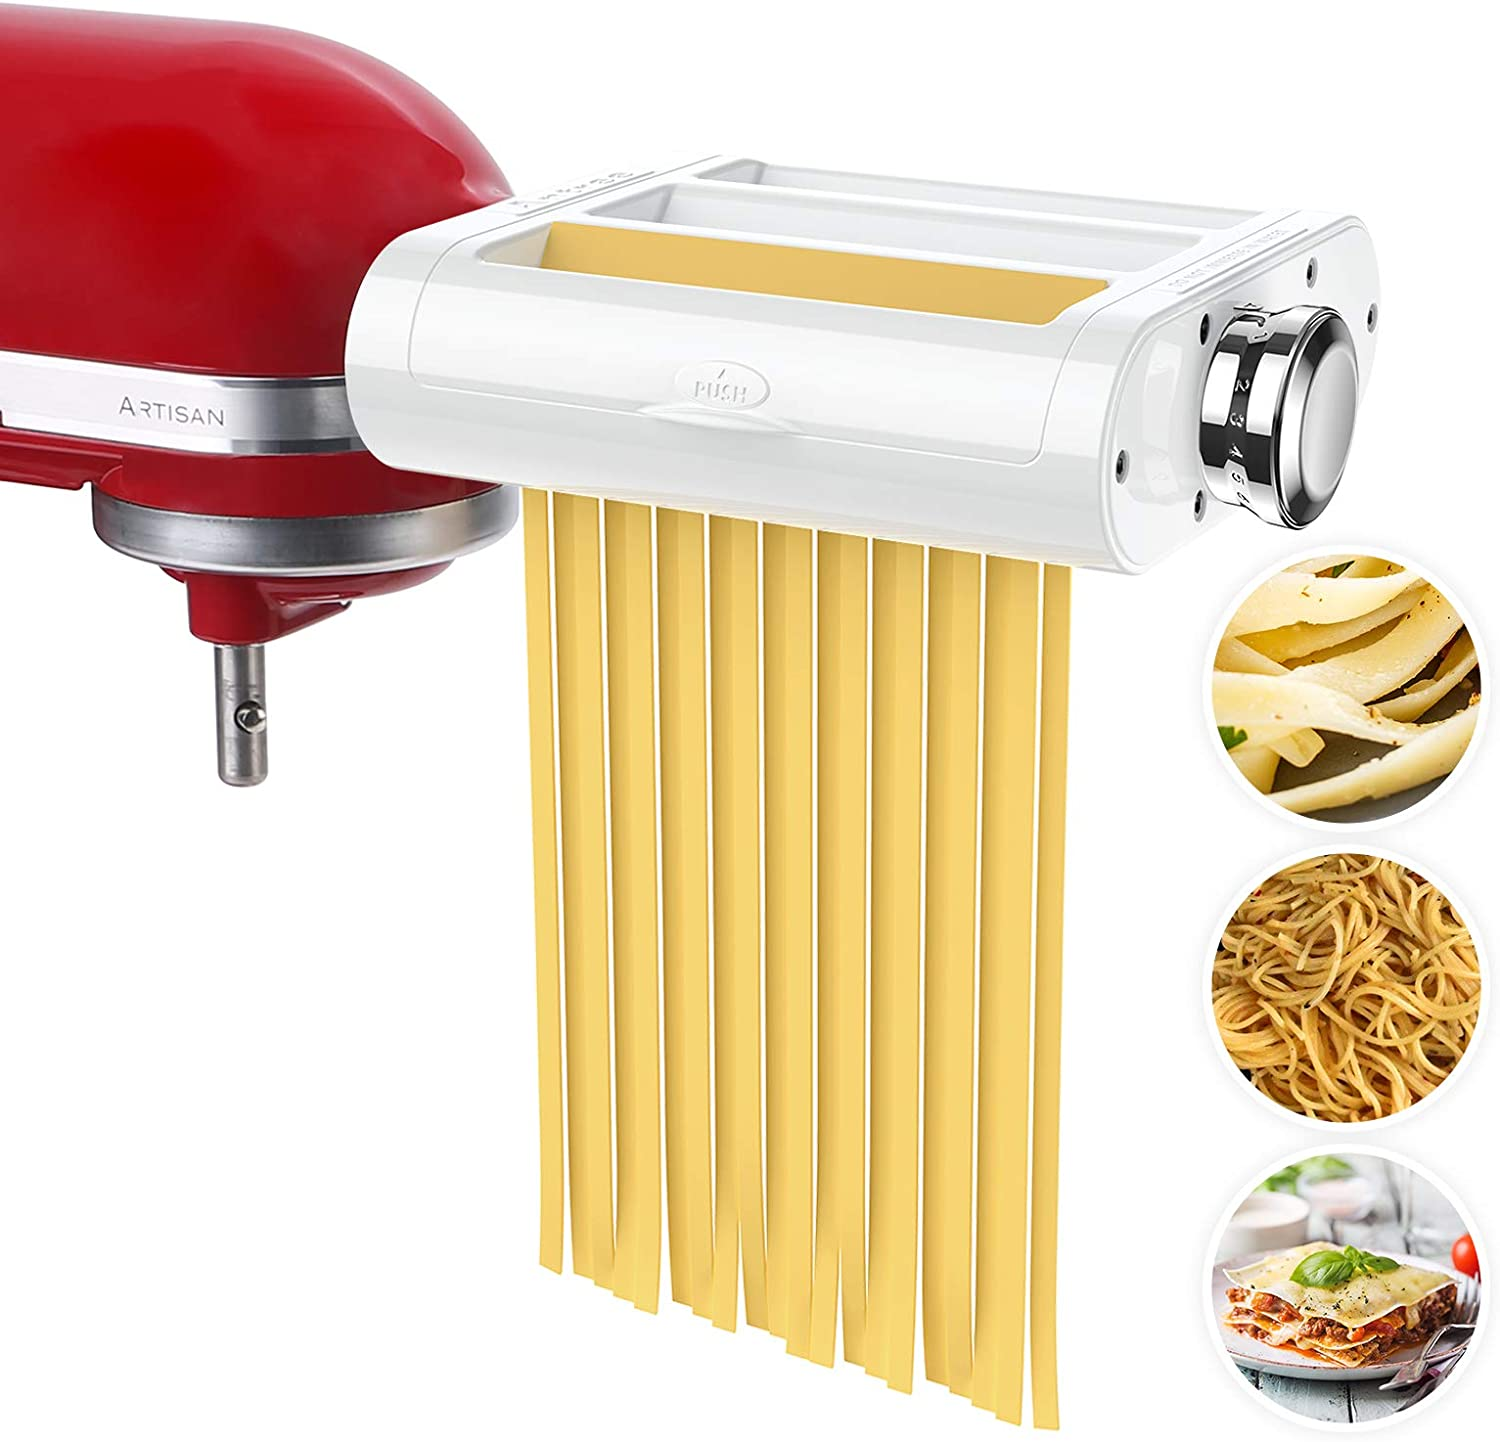 Amazon Com Antree Pasta Maker Attachment 3 In 1 Set For Kitchenaid Stand Mixers Included Pasta Sheet Roller Spaghetti Cutter Fettuccine Cutter Maker Accessories And Cleaning Brush Home Kitchen